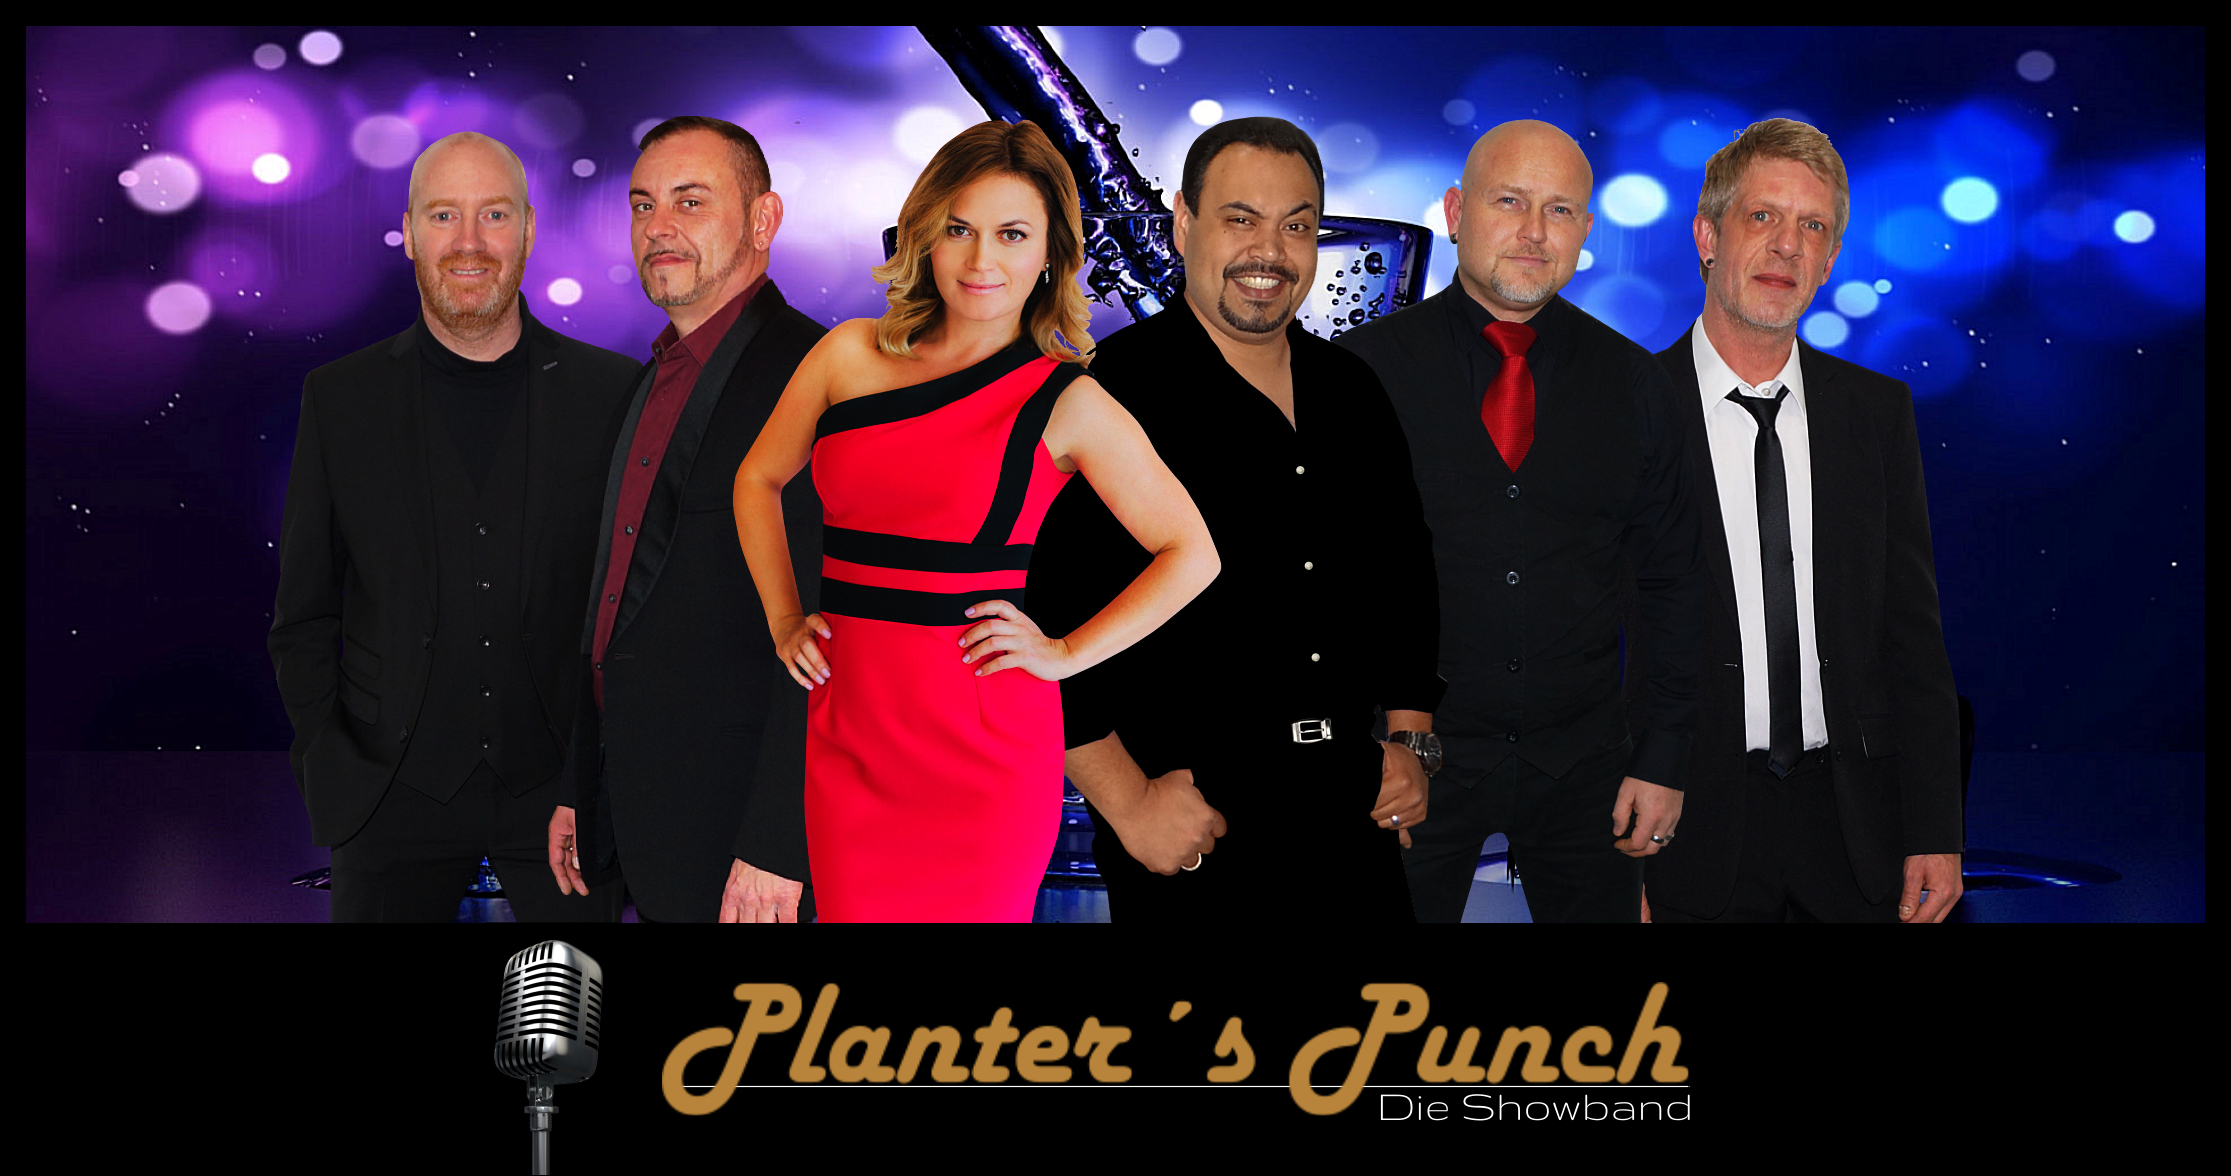 Planters Punch - Die Showband picture